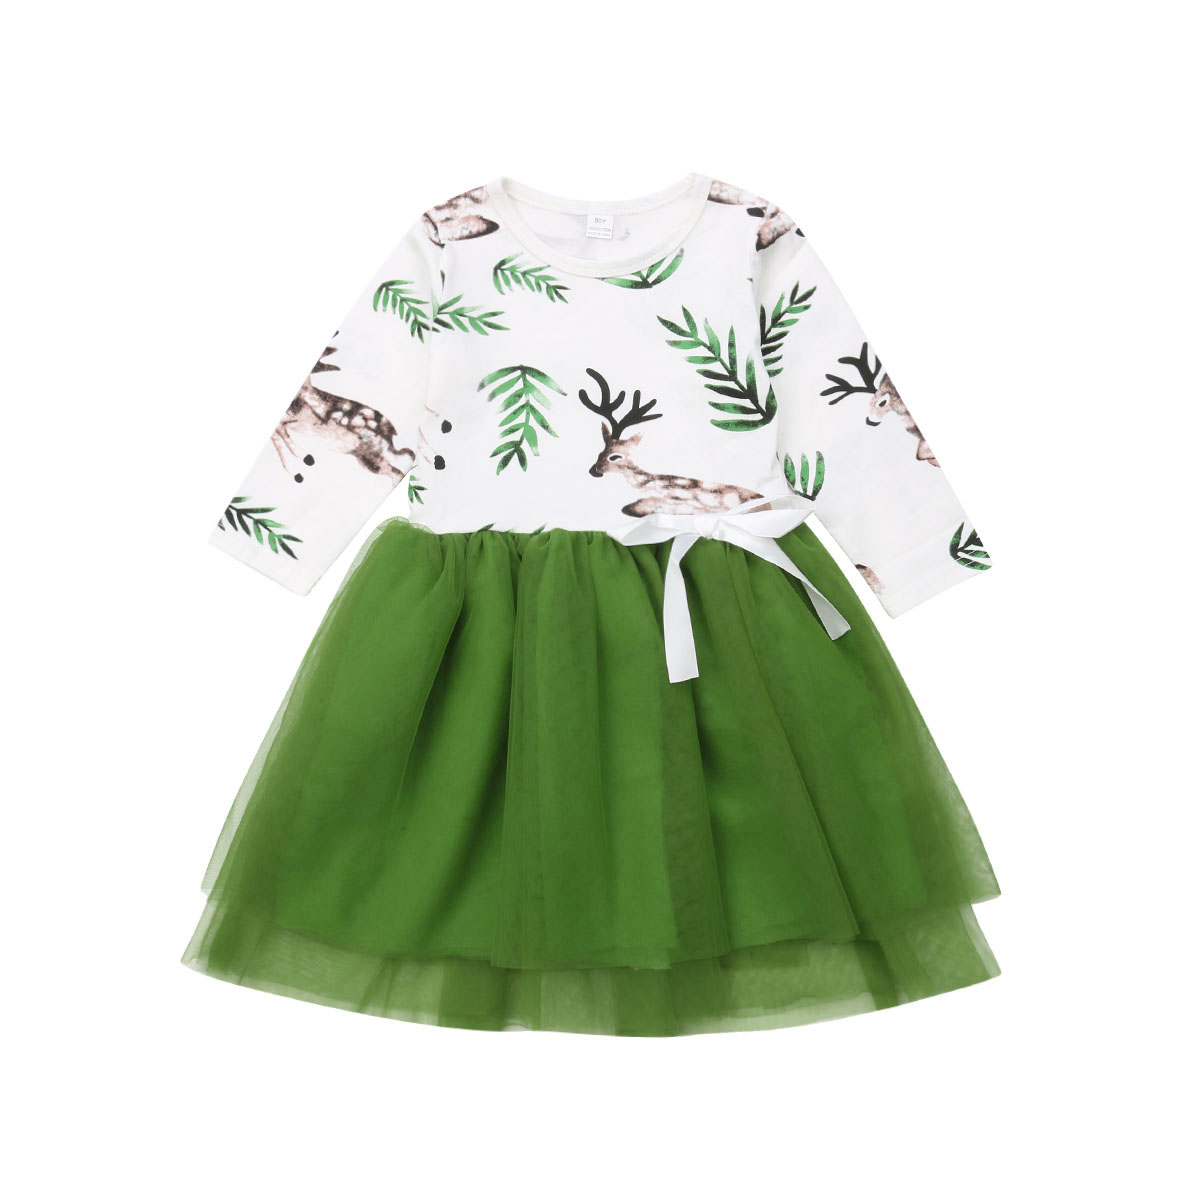 Toddler Baby Girls Kids Clothing Dresses Casual Party Mini